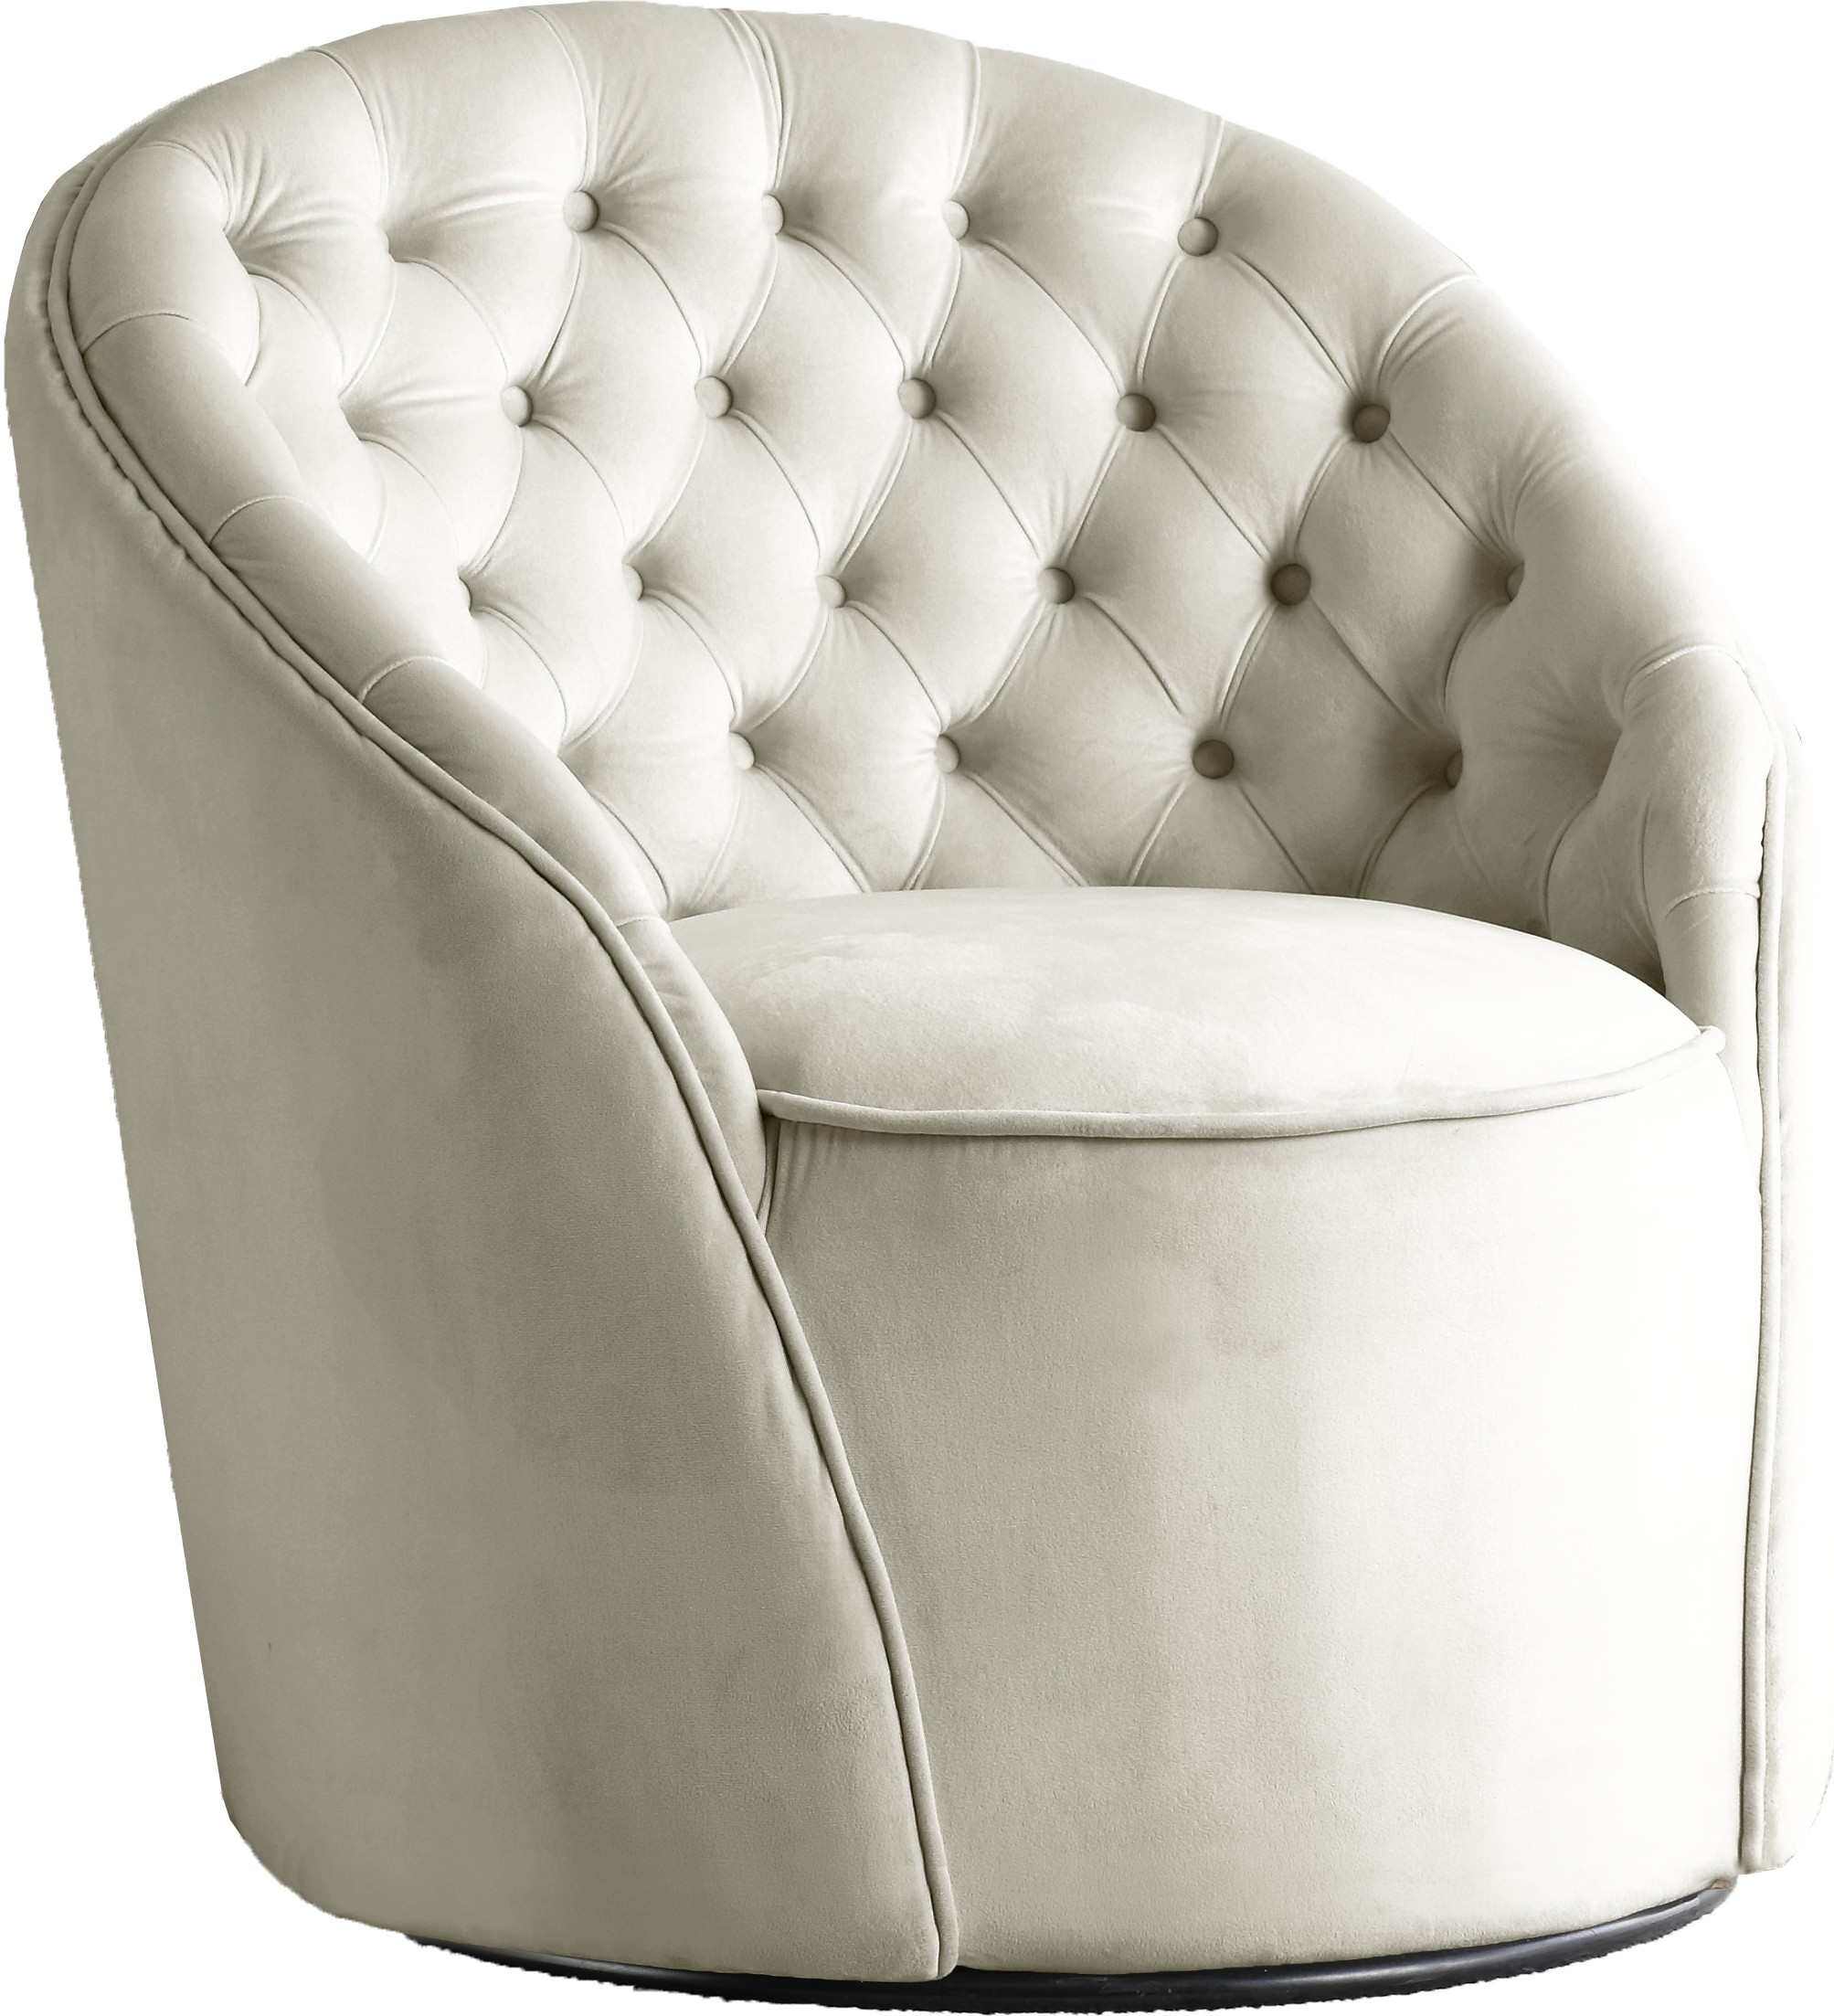 Brilliant Meridian Furniture Plus Dailytribune Chair Design For Home Dailytribuneorg